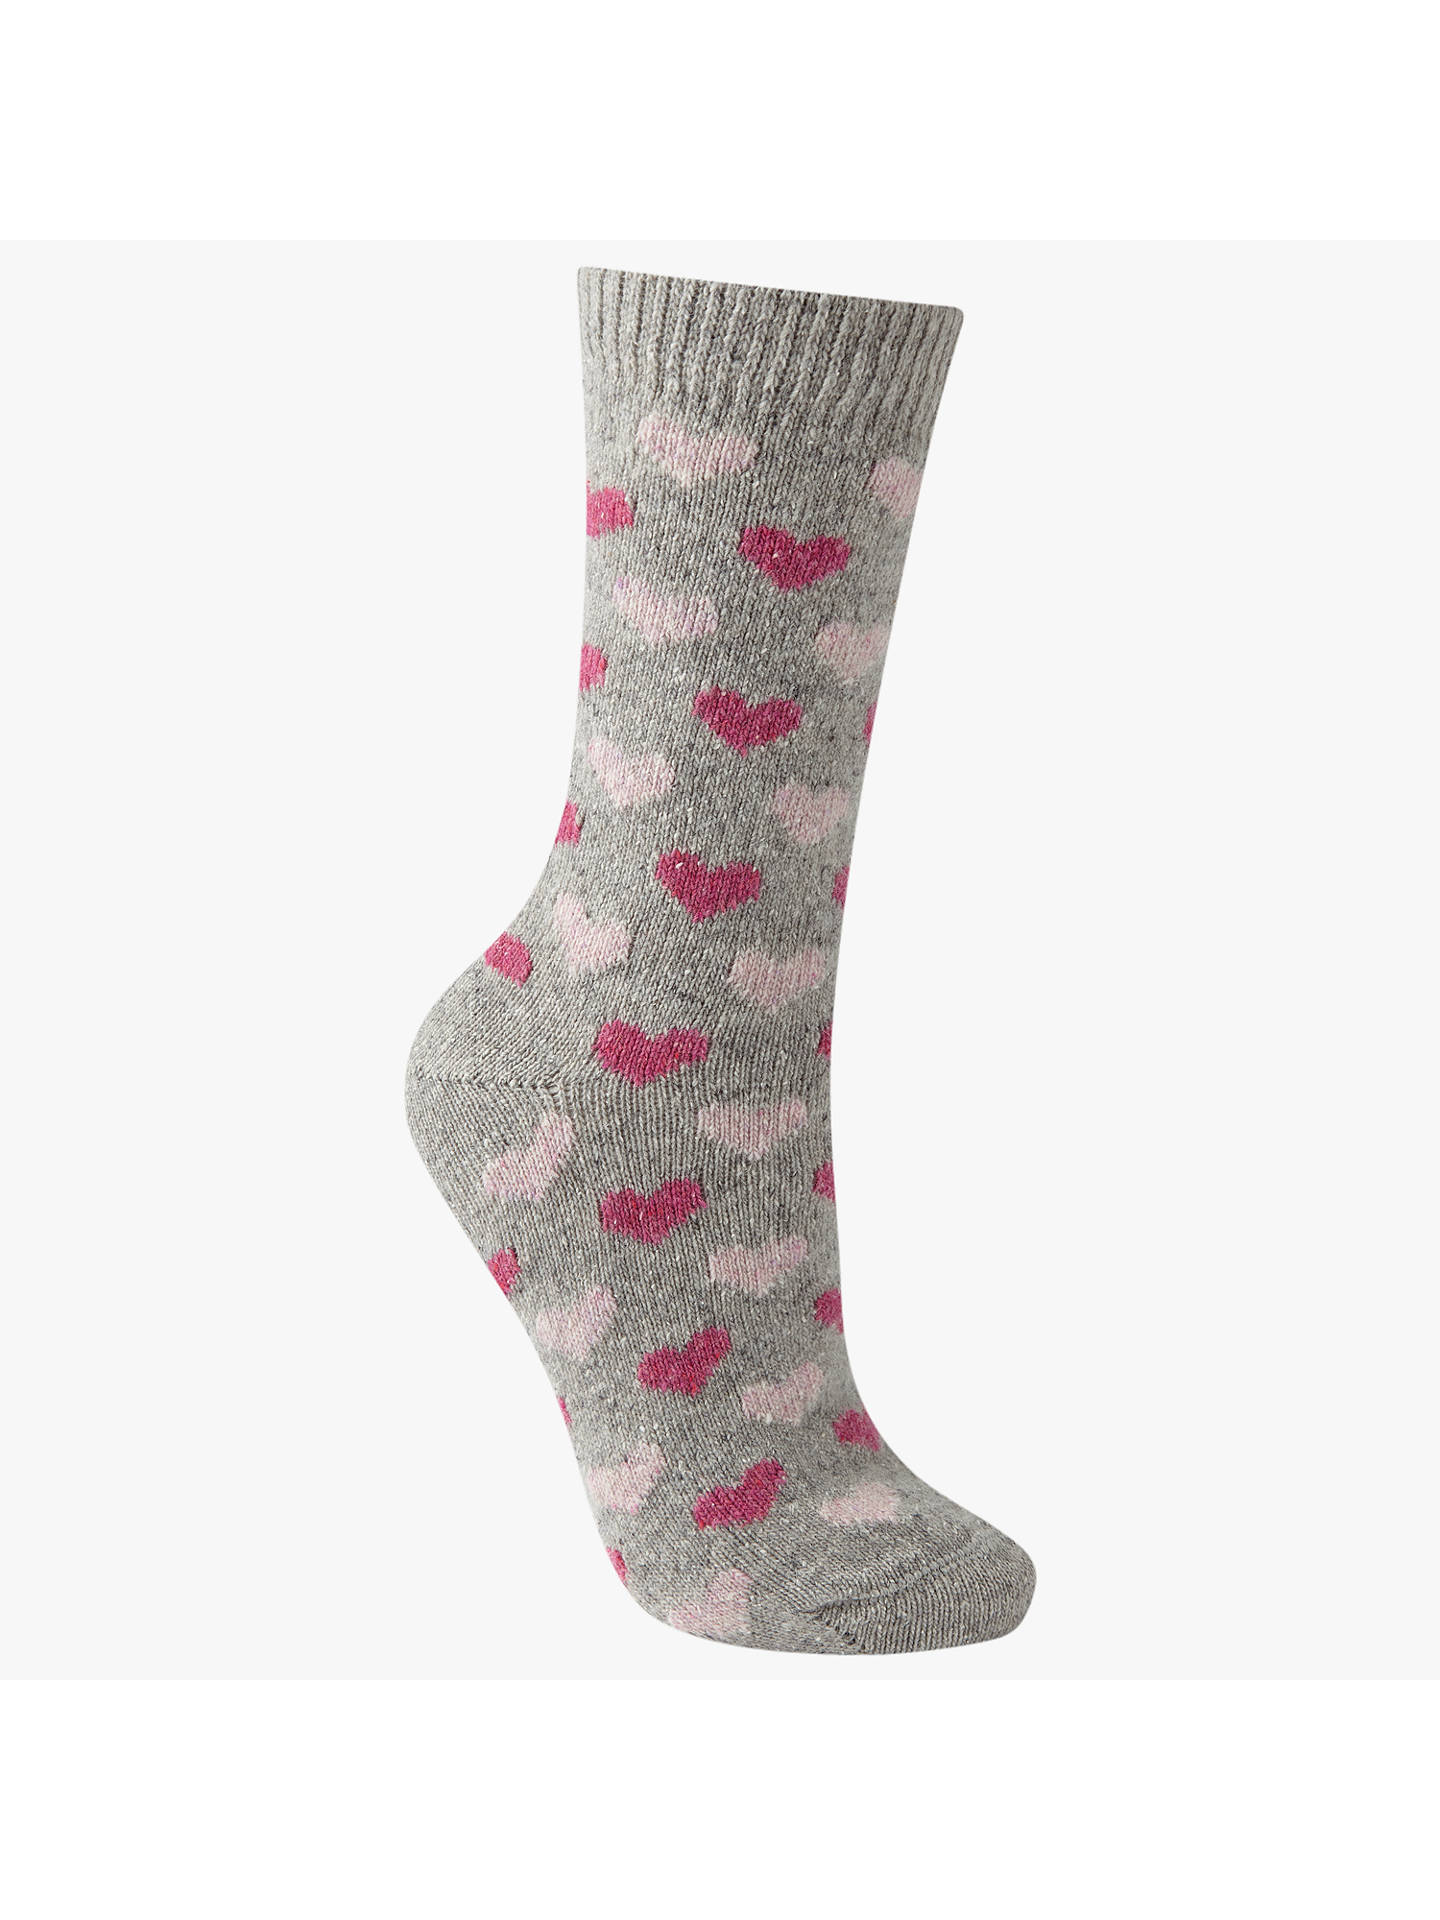 BuyJohn Lewis & Partners Wool Silk Mix Mini Heart Print Ankle Socks, Grey/Pink Online at johnlewis.com